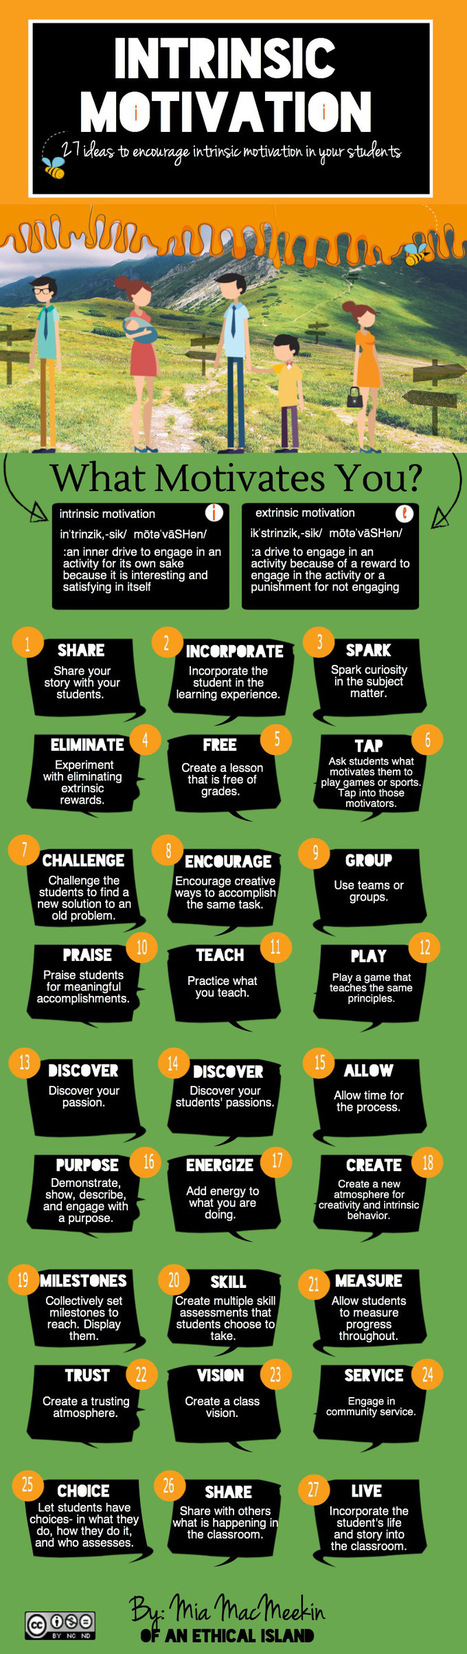 27 Tools for Instilling Intrinsic Motivation | iTeach Cafe, LLC | Scoop.it